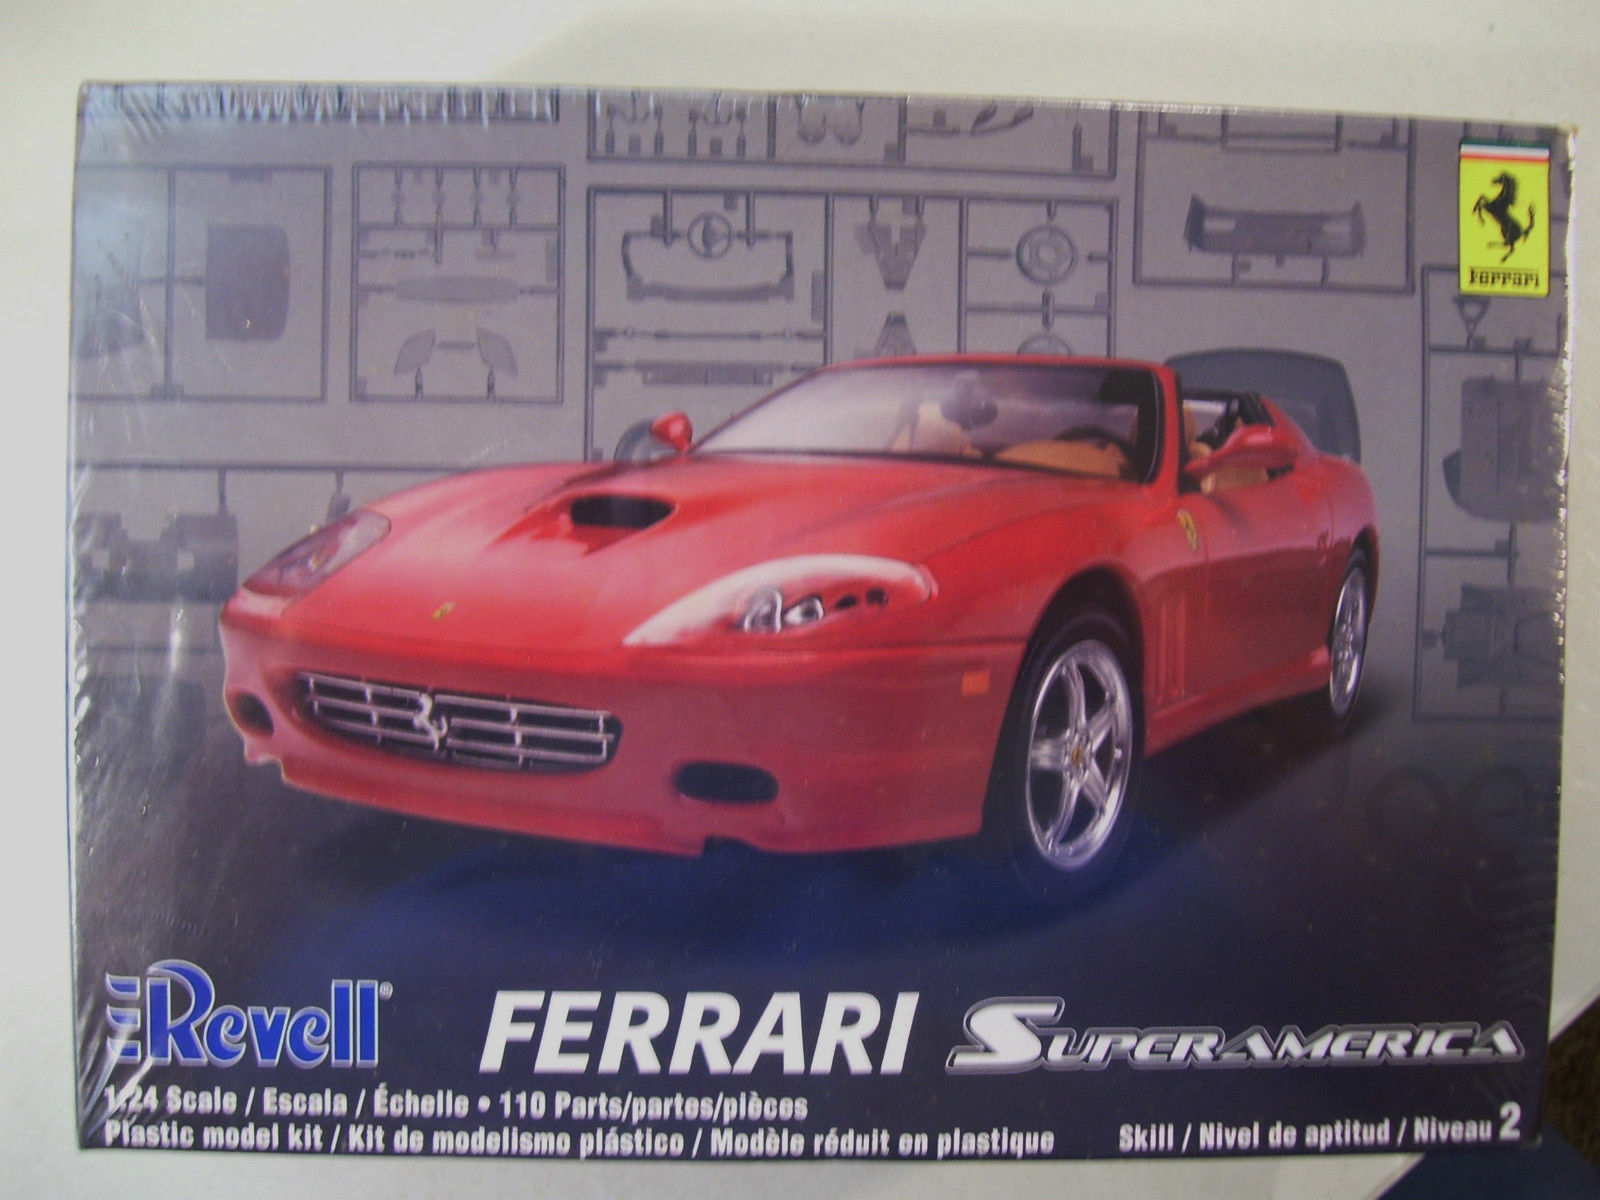 Revell Ferrari Superamerica 1:24 Scale Model Kit by Revell